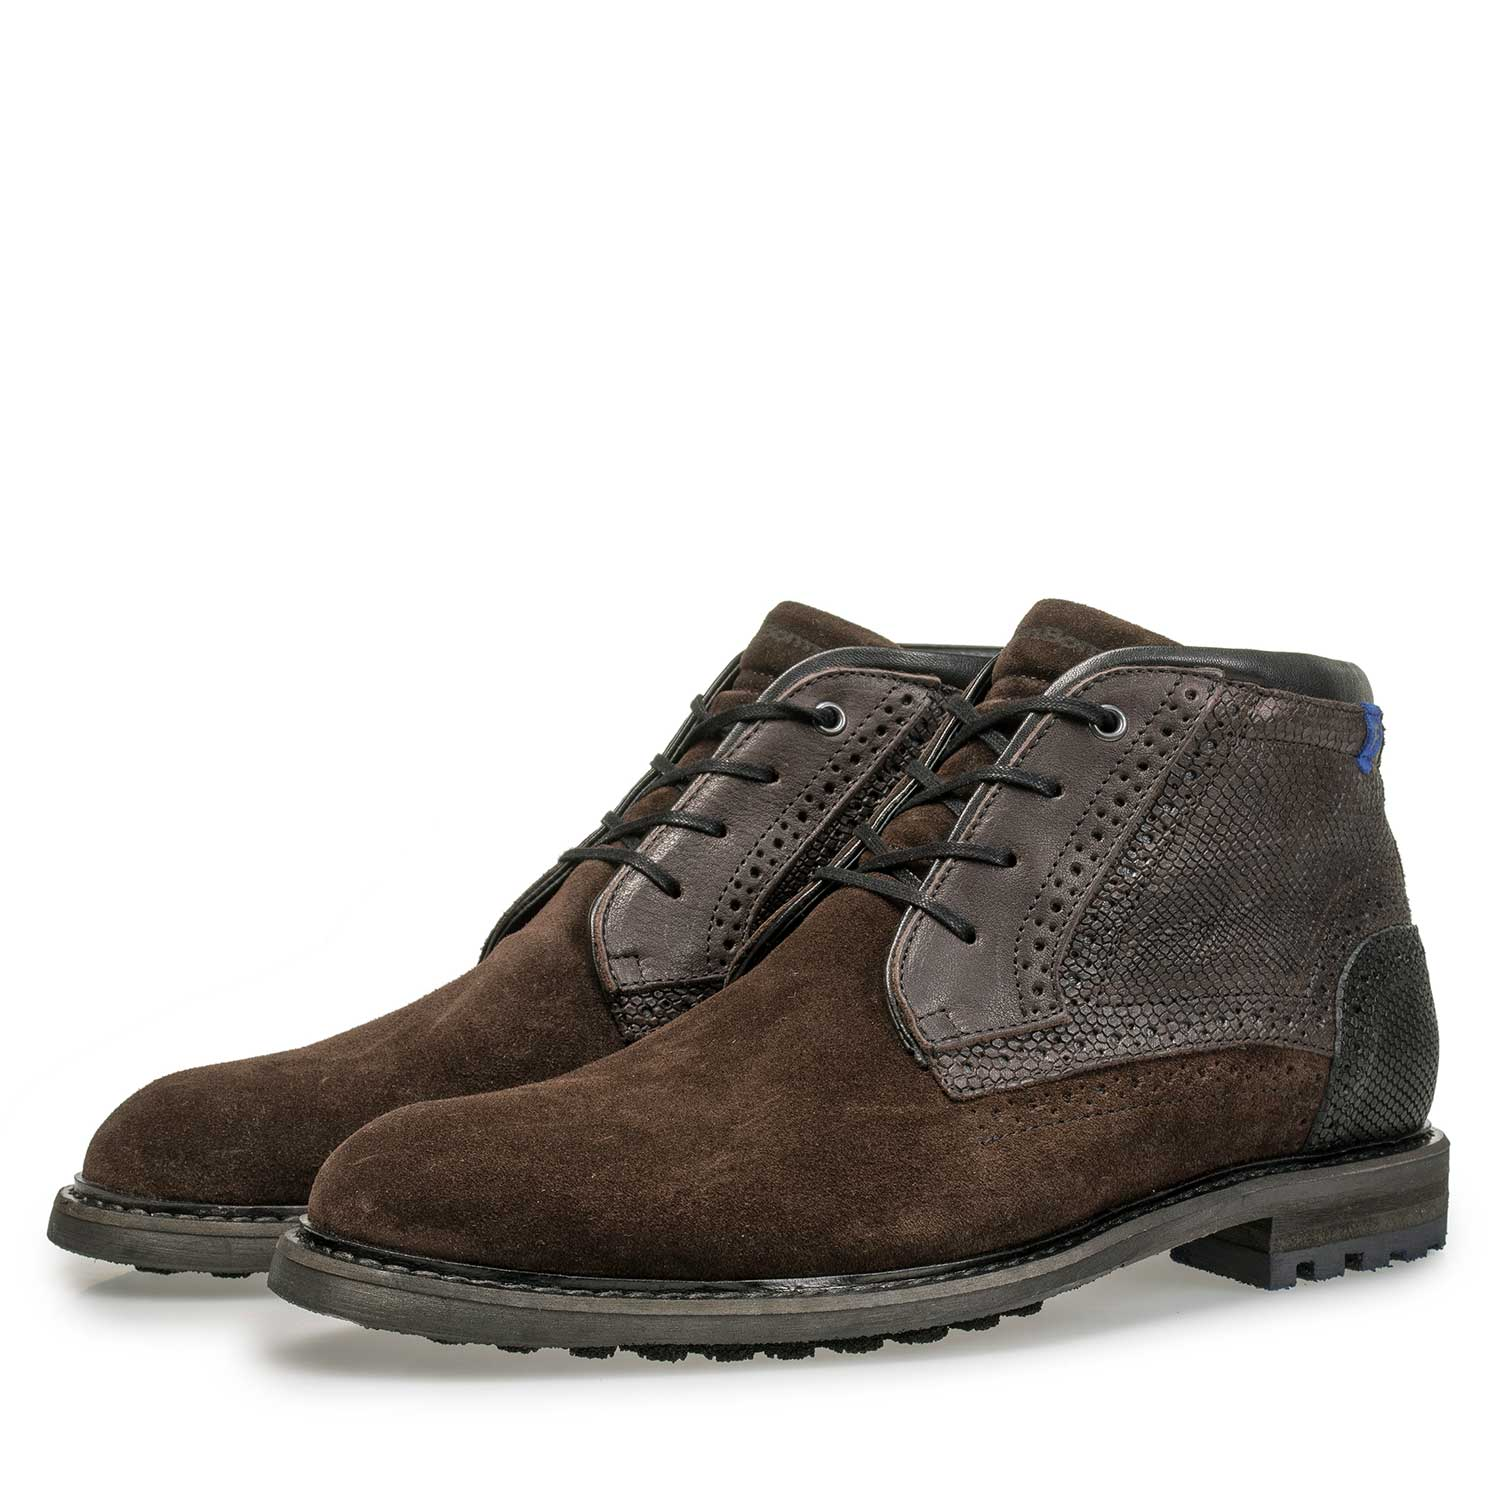 10978/13 - Brown suede leather lace boot